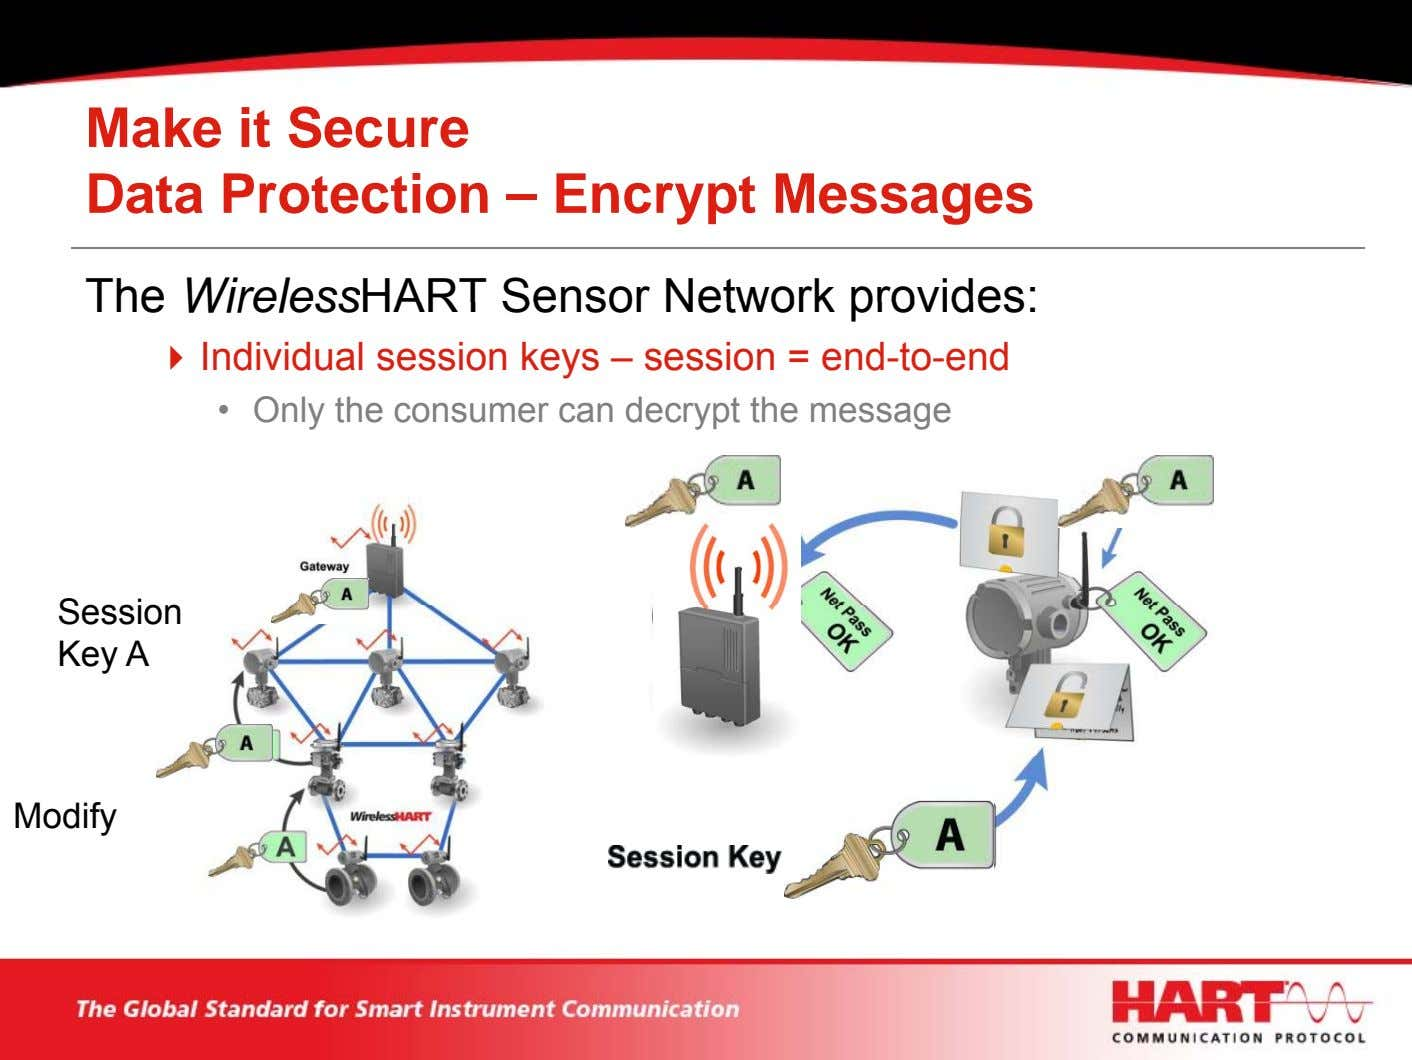 Make it Secure Data Protection – Encrypt Messages The WirelessHART Sensor Network provides: Individual session